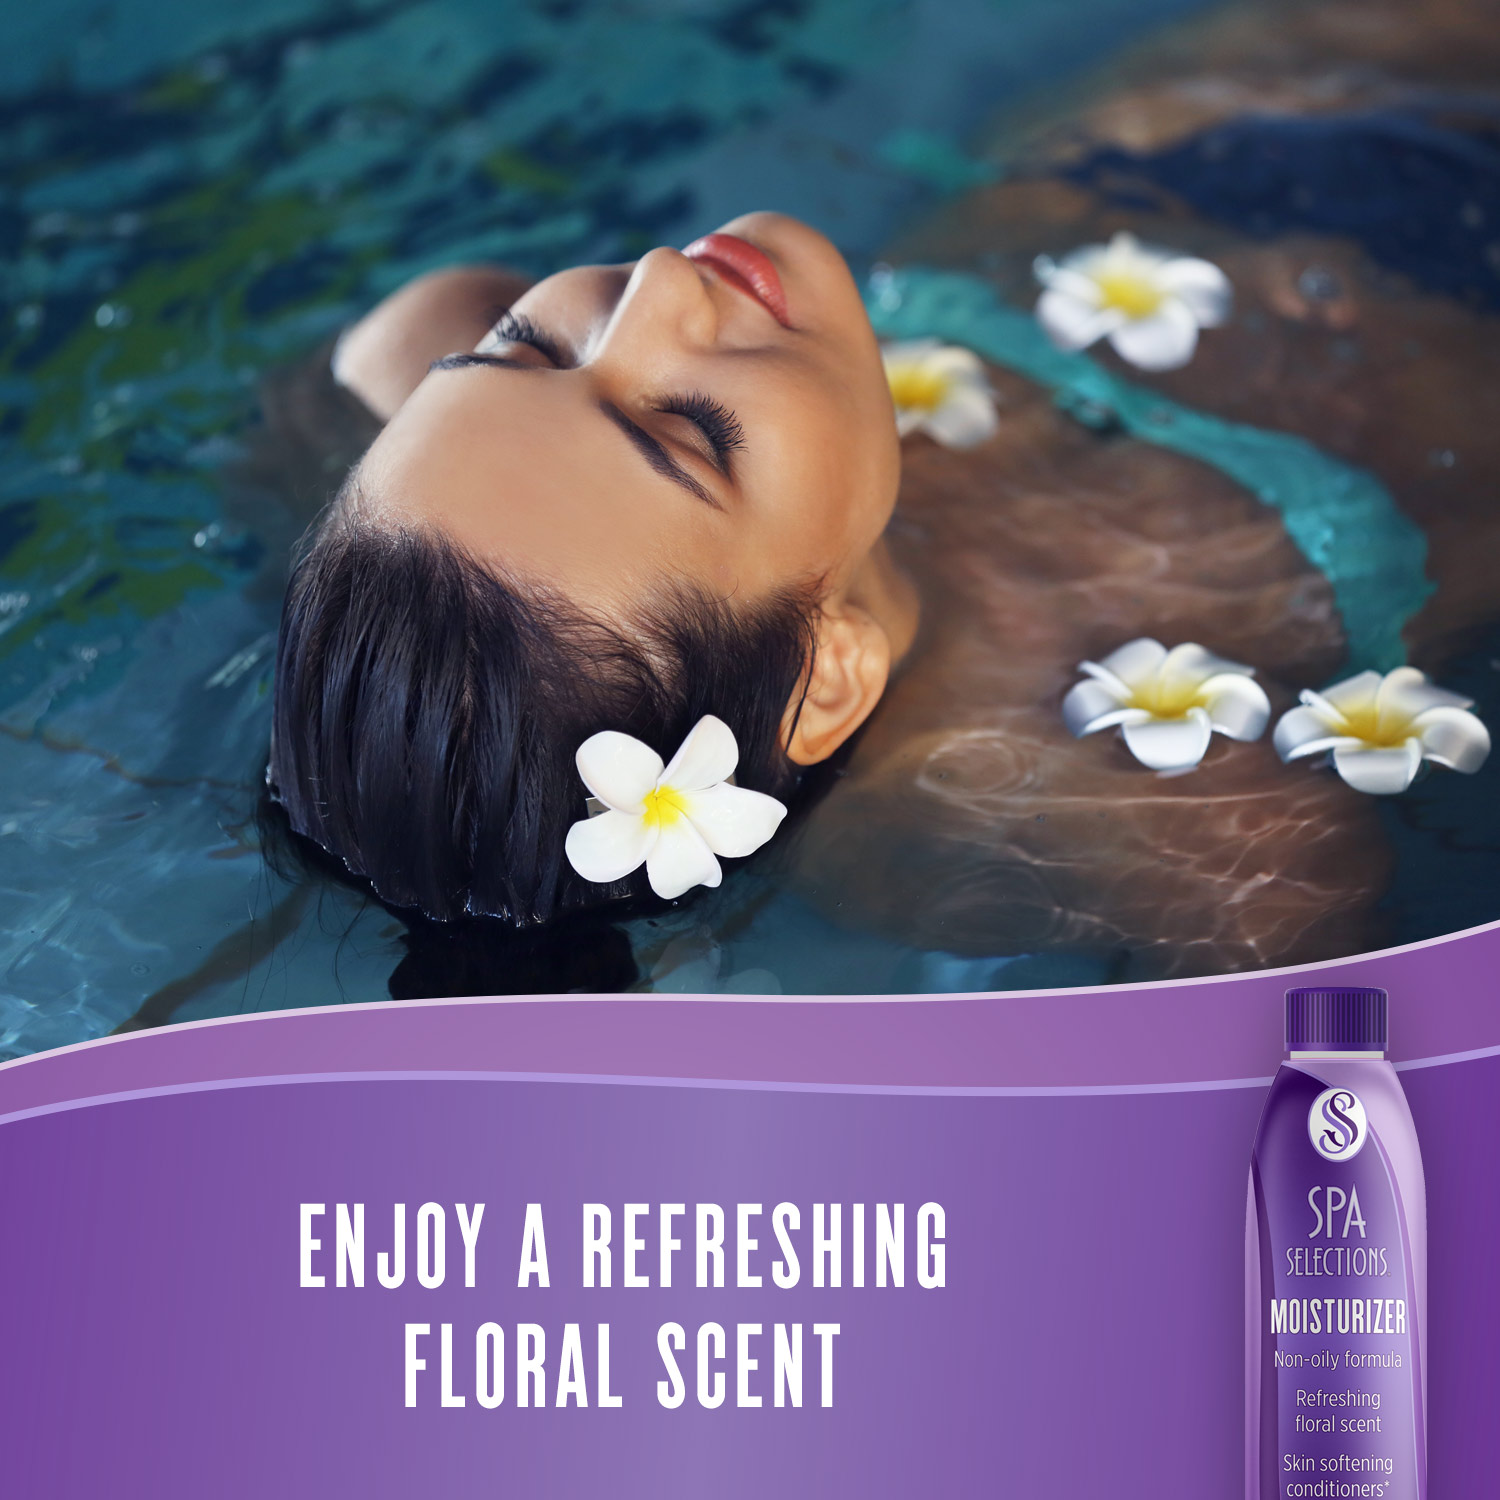 Enjoy a refreshing floral scent with Spa Selections Moisturizer. Photo of woman in a spa with daisys floating nearby.